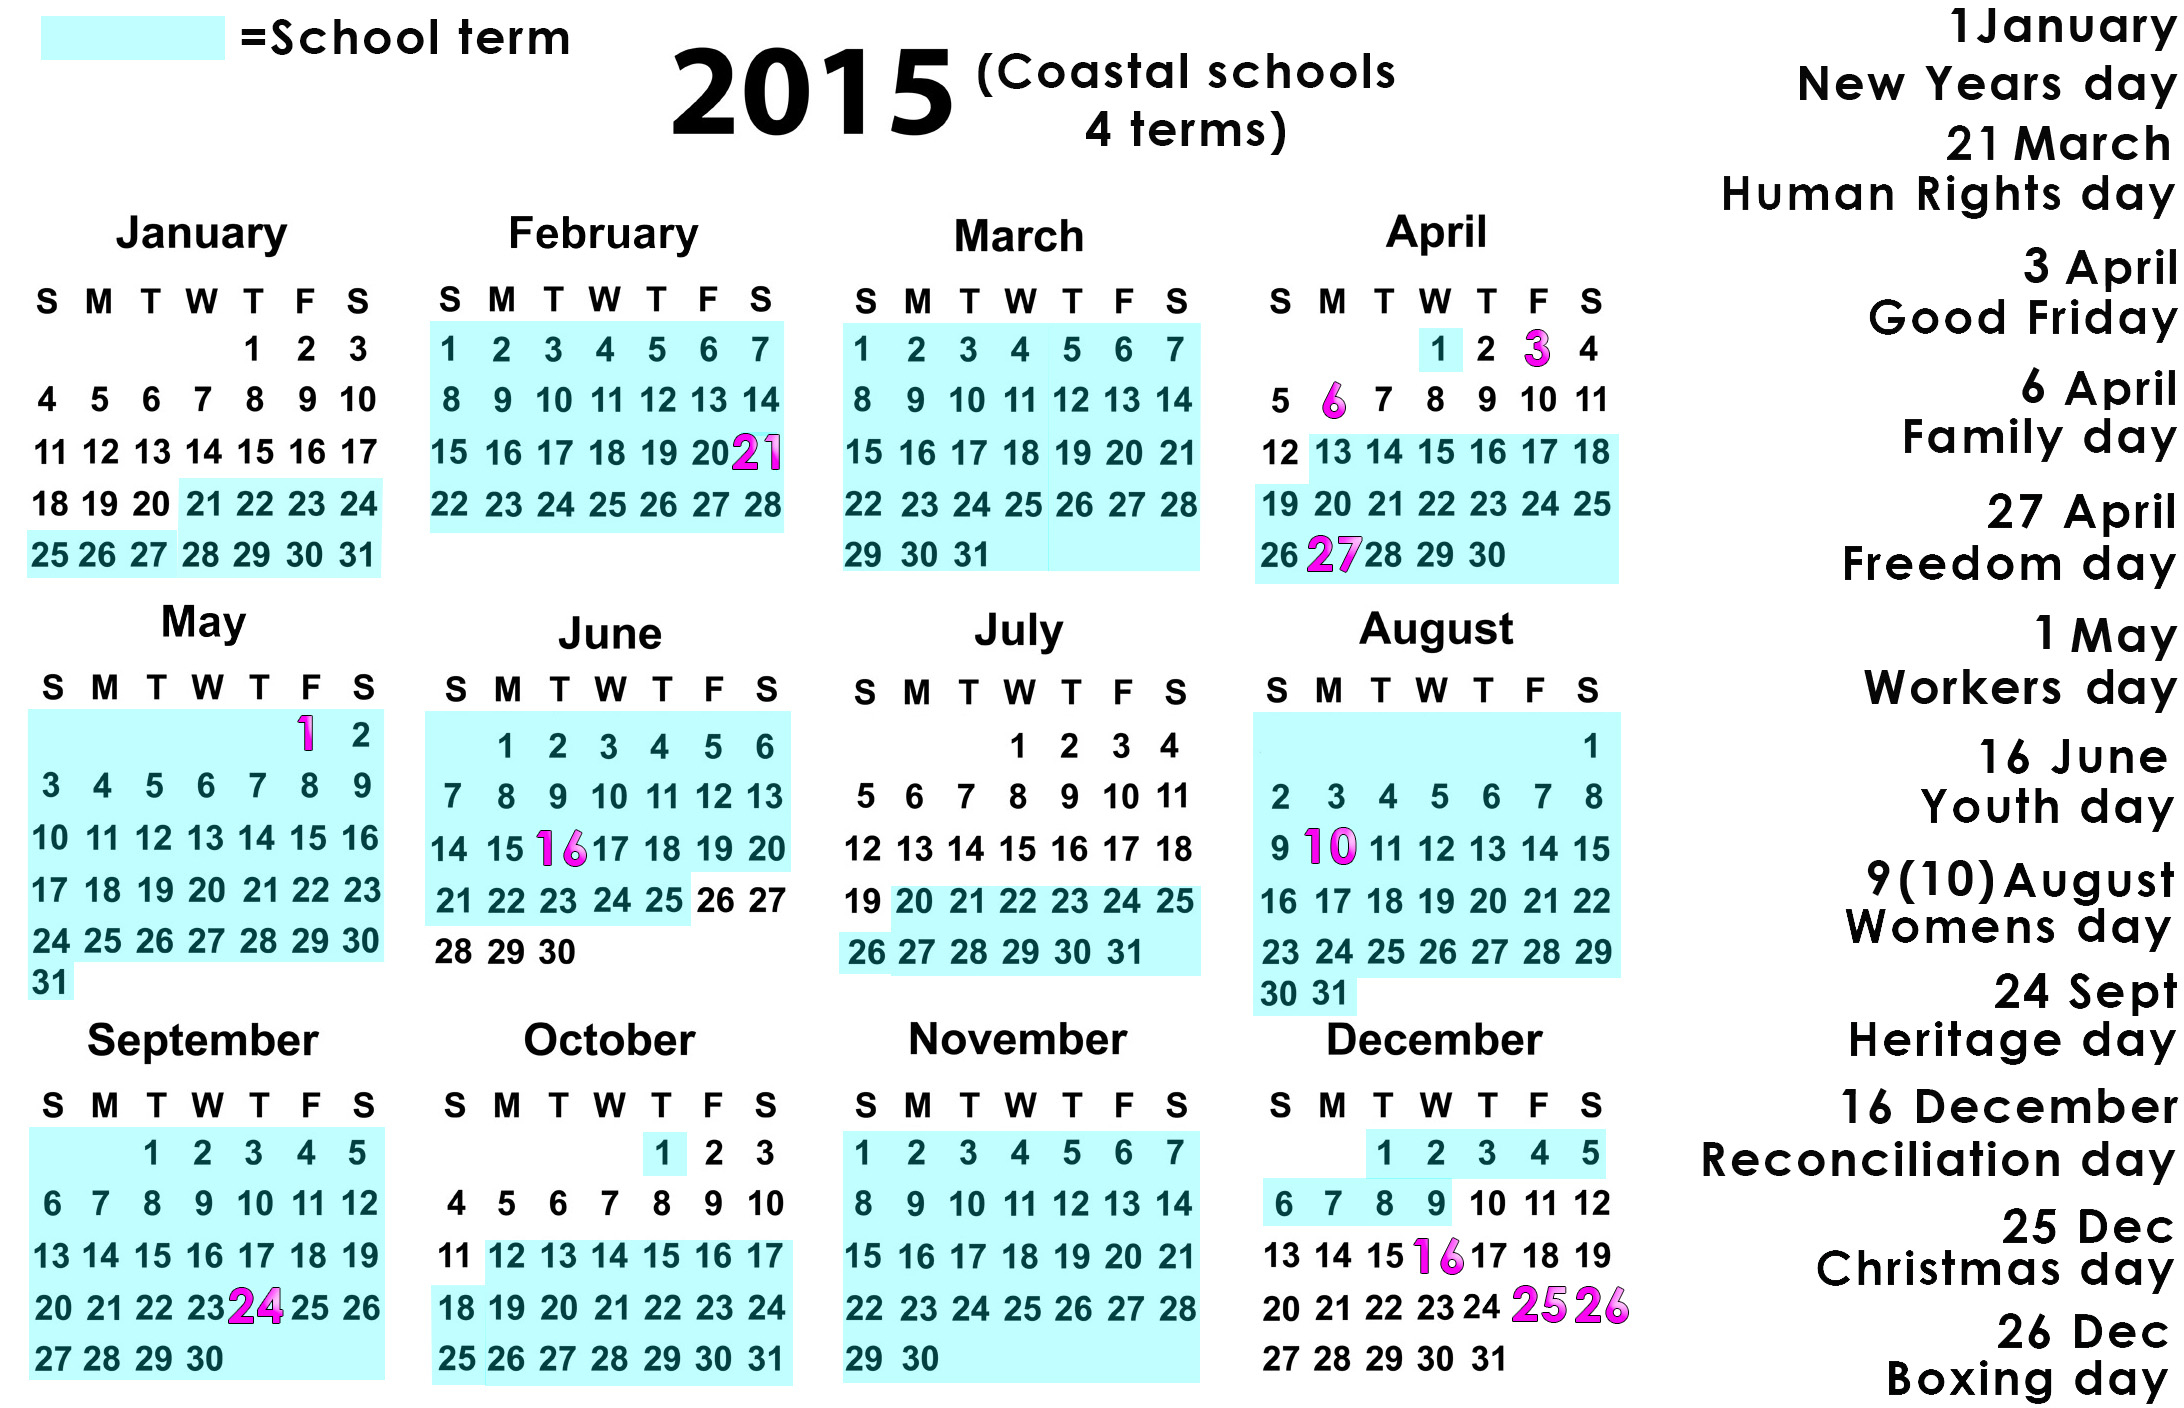 Eastern Cape School Calendar   Calendar For Planning inside Empires And Puzzles Calendar May 2021